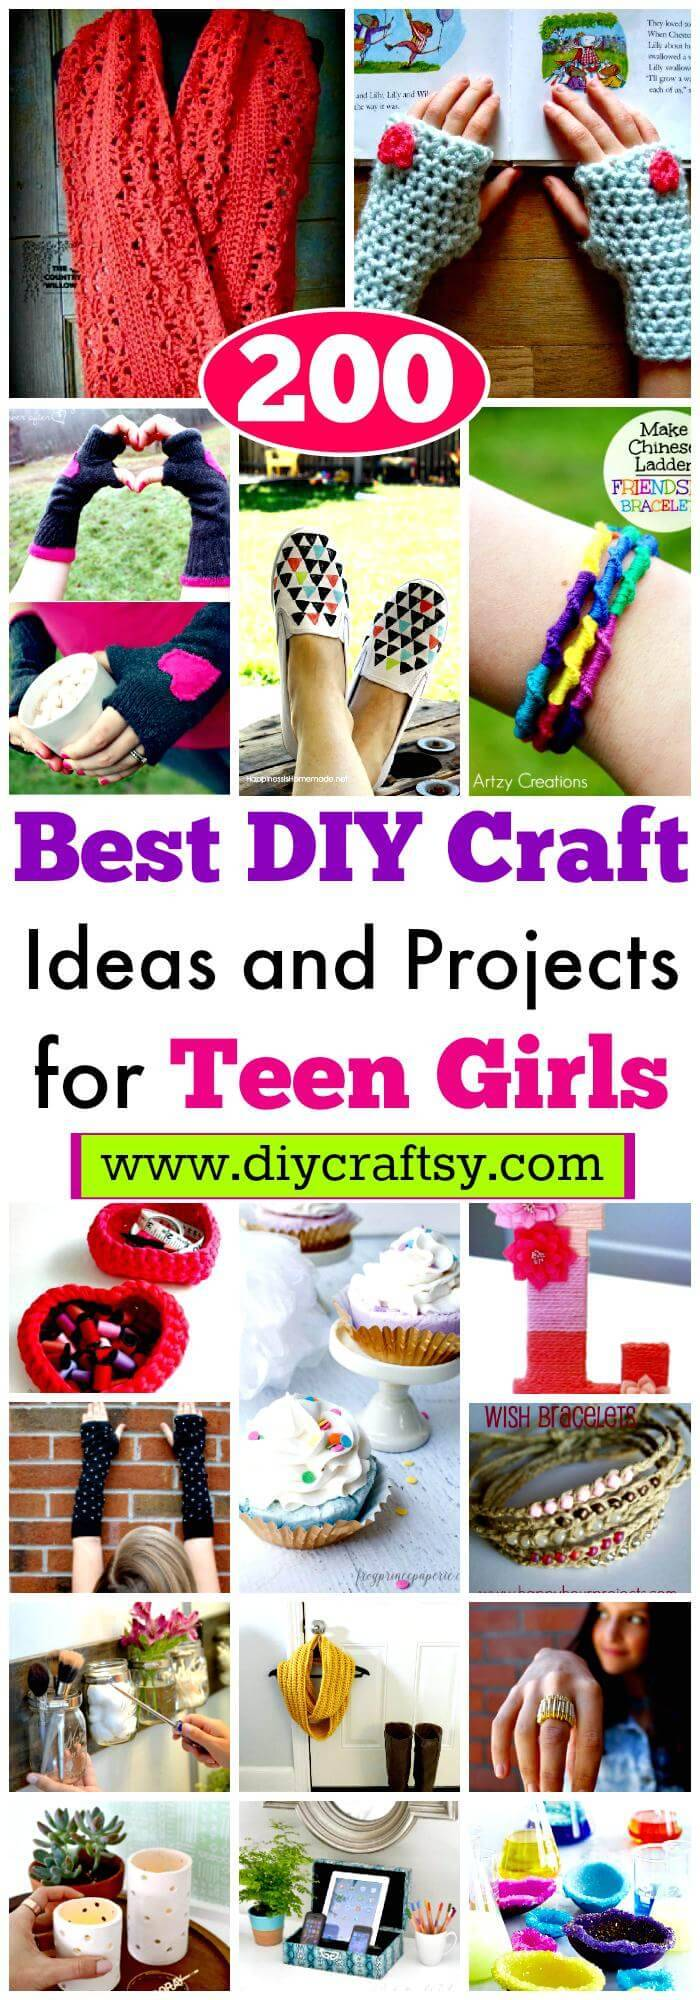 diy craft ideas 200 best diy craft ideas and projects for teen diy 1865